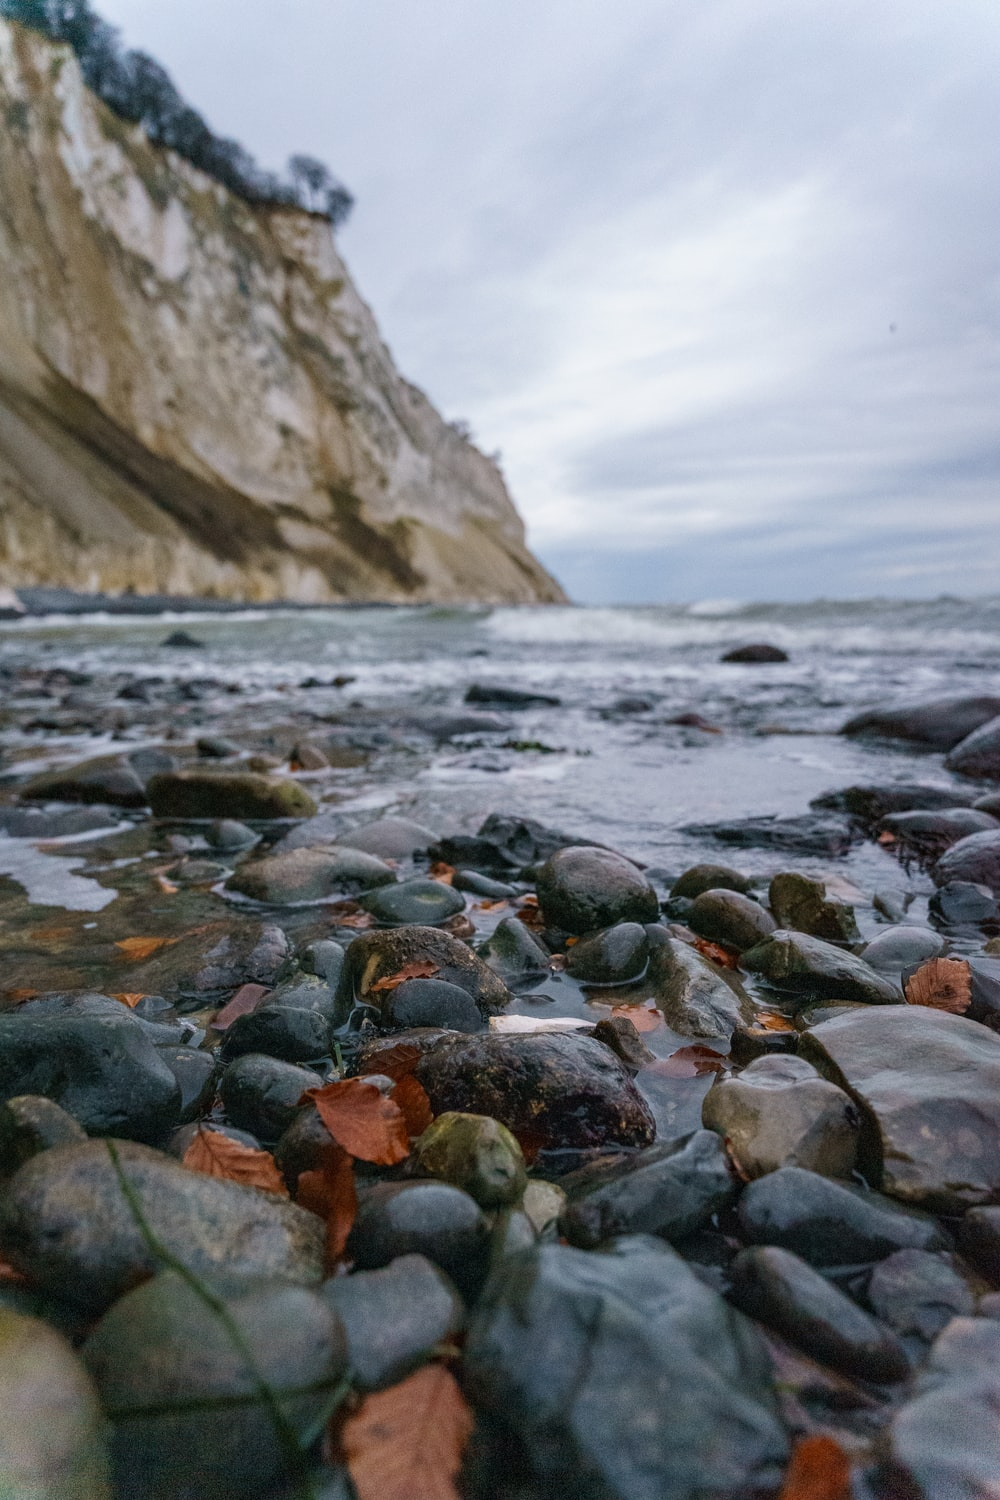 rocky shore with stones and water waves